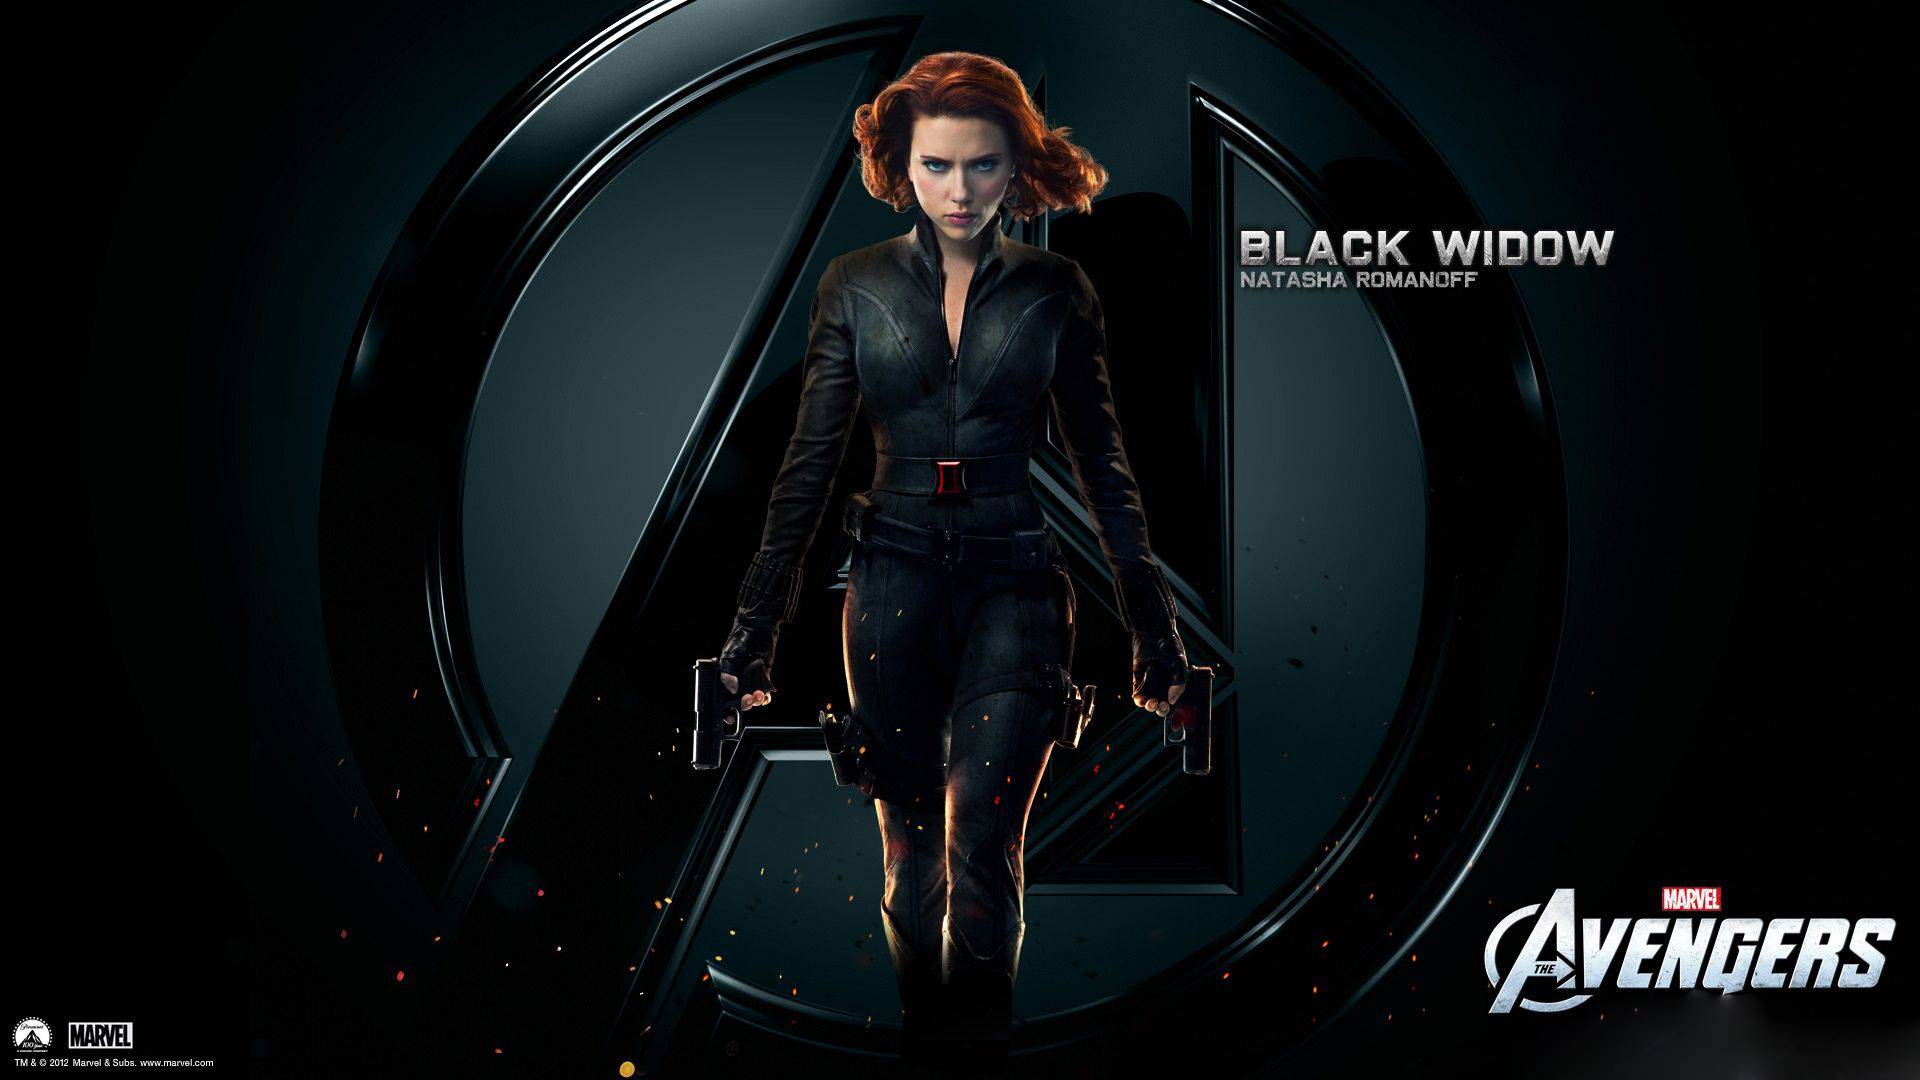 black widow marvel avengers natalia romanova natasha hd wallpaper